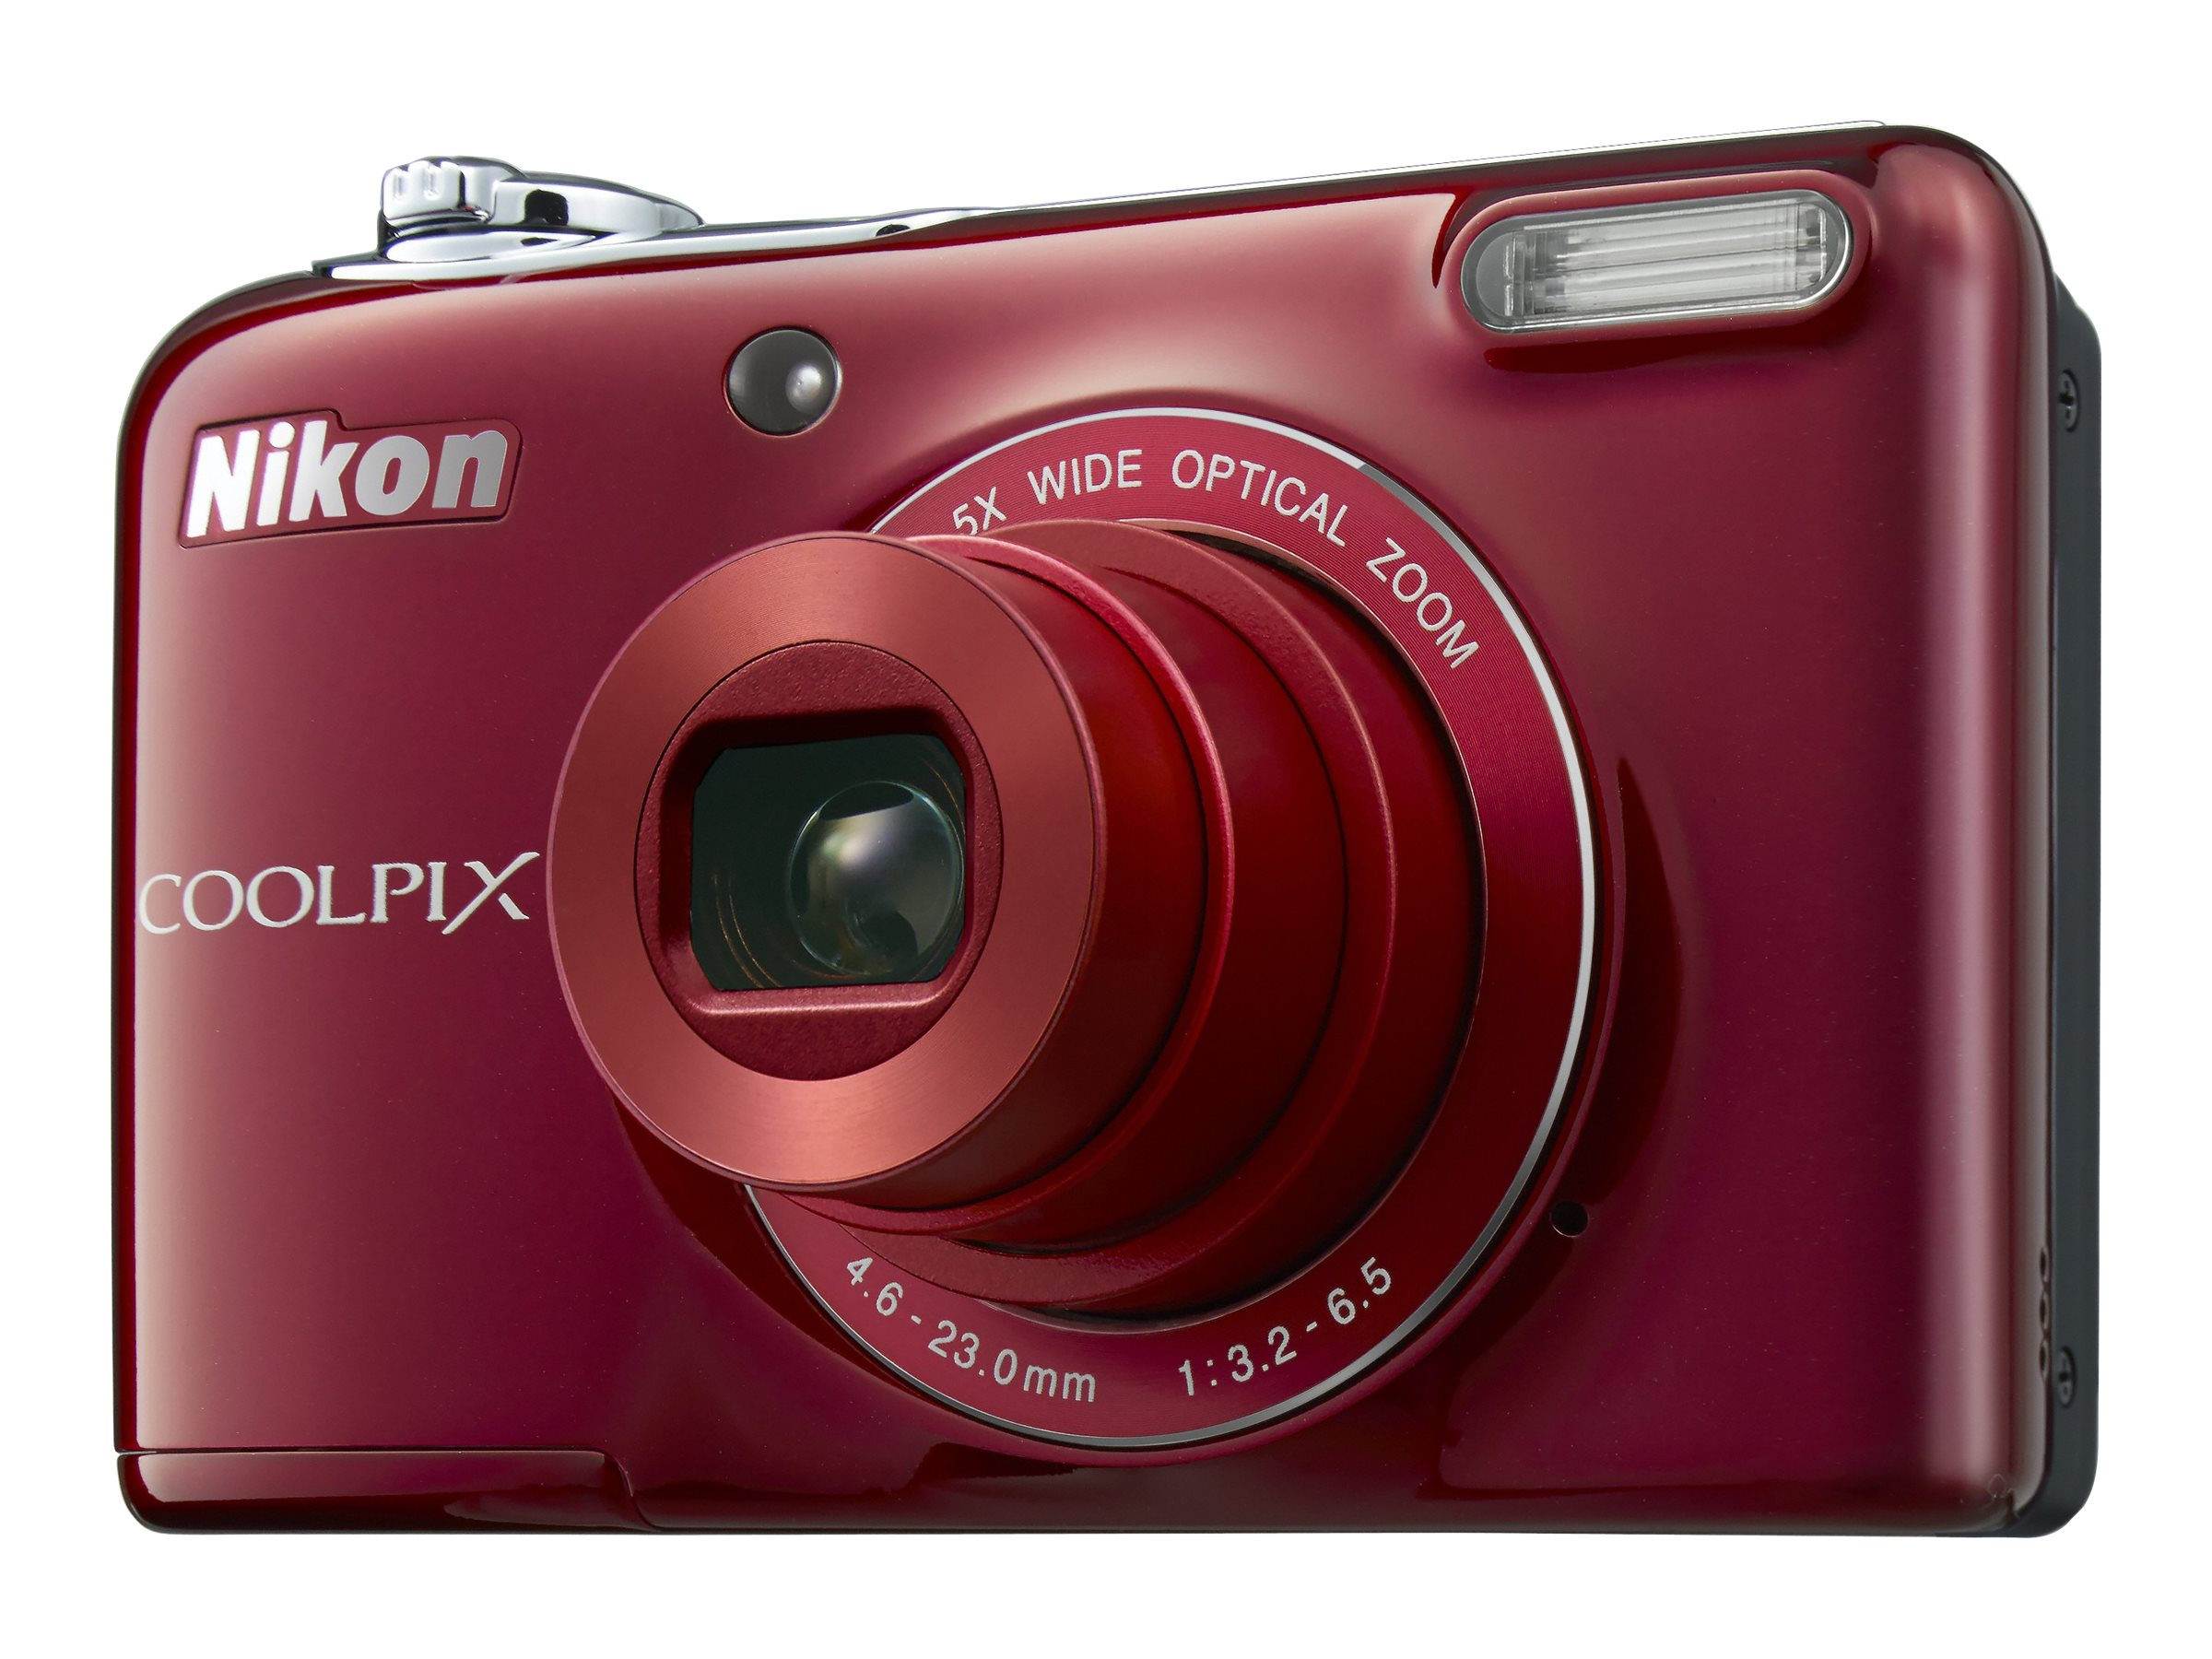 Nikon COOLPIX L32 Digital Camera, 20.1MP, 5x Zoom, Red, 26482, 29321641, Cameras - Digital - Point & Shoot